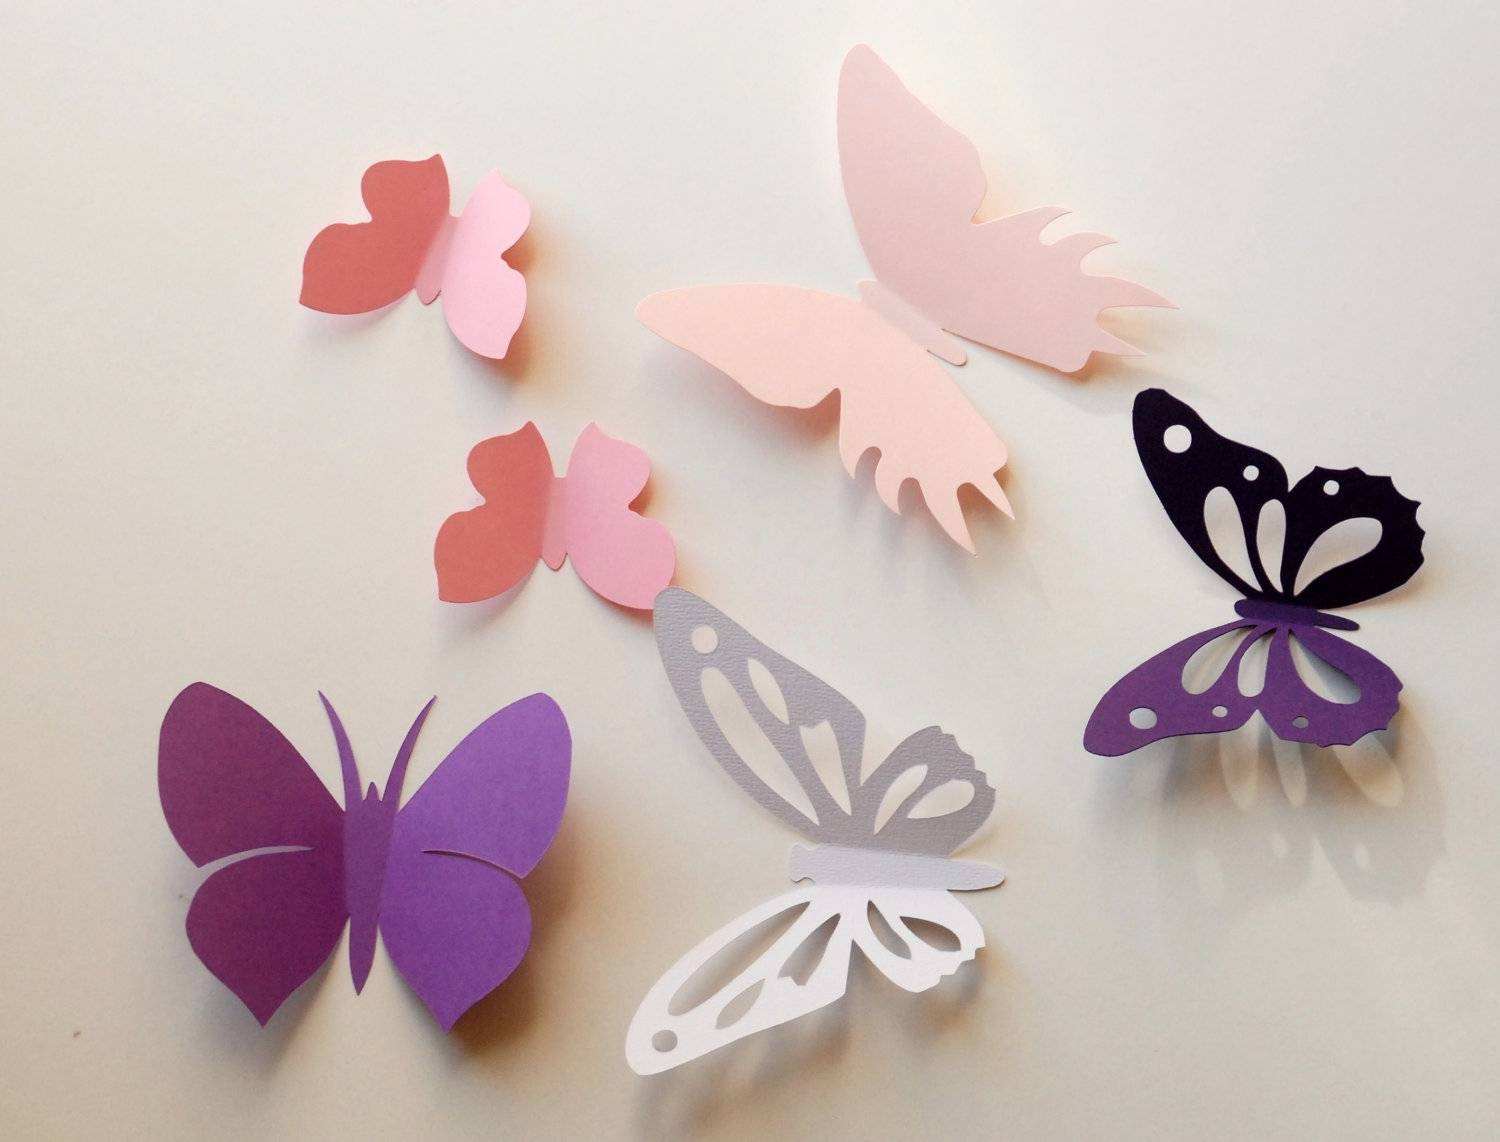 3D Paper Butterfly Wall Sticker Room Decoration Baby Within Most Up To Date White 3D Butterfly Wall Art (Gallery 12 of 20)